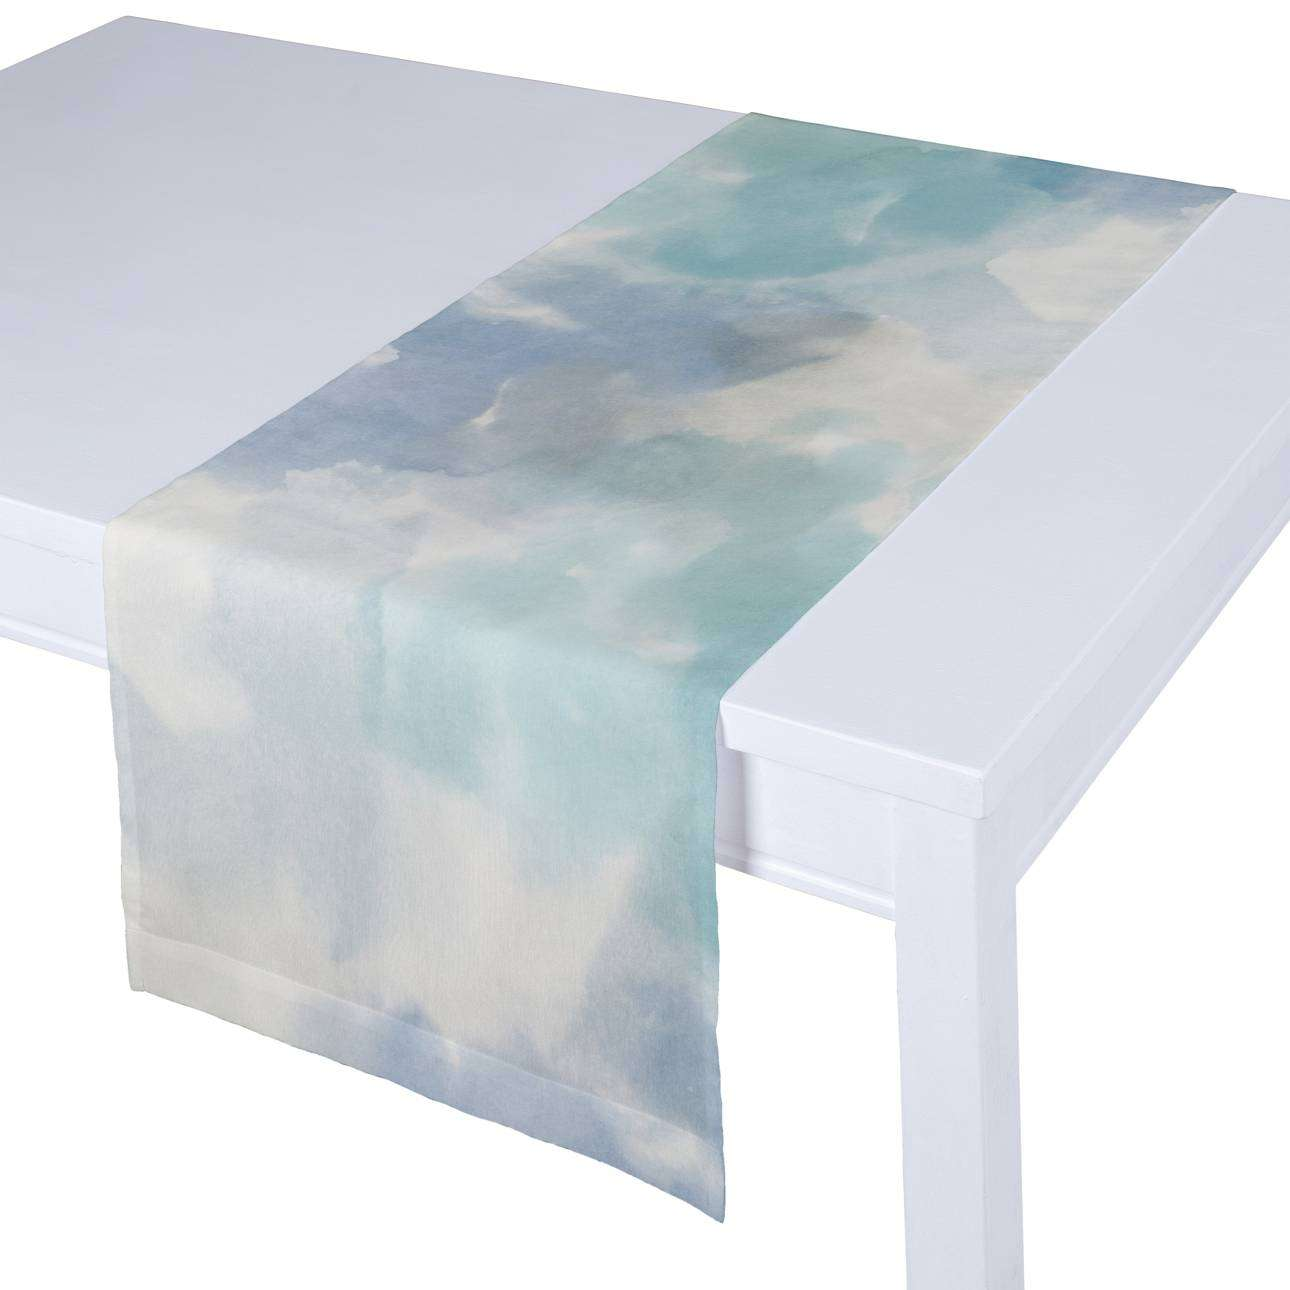 Table runner 40 × 130 cm (16 × 51 inch) in collection Aquarelle, fabric: 140-67